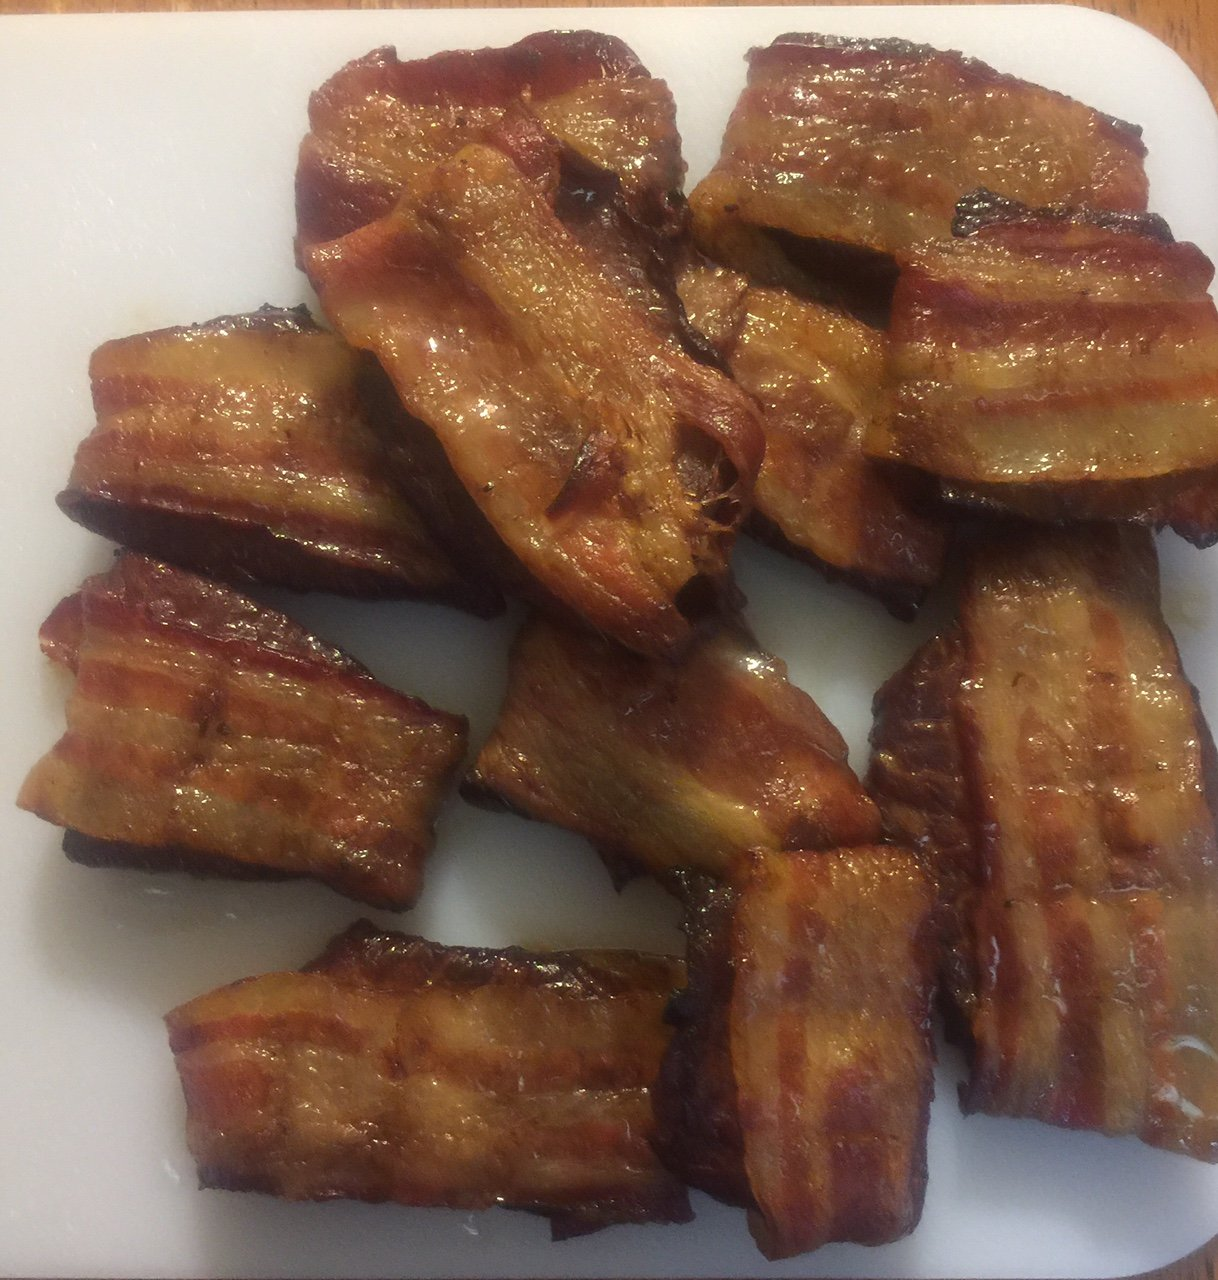 Garlic parmasean Smoked Beef Jerky Wrapped in Thick Cut Bacon  8 ounce